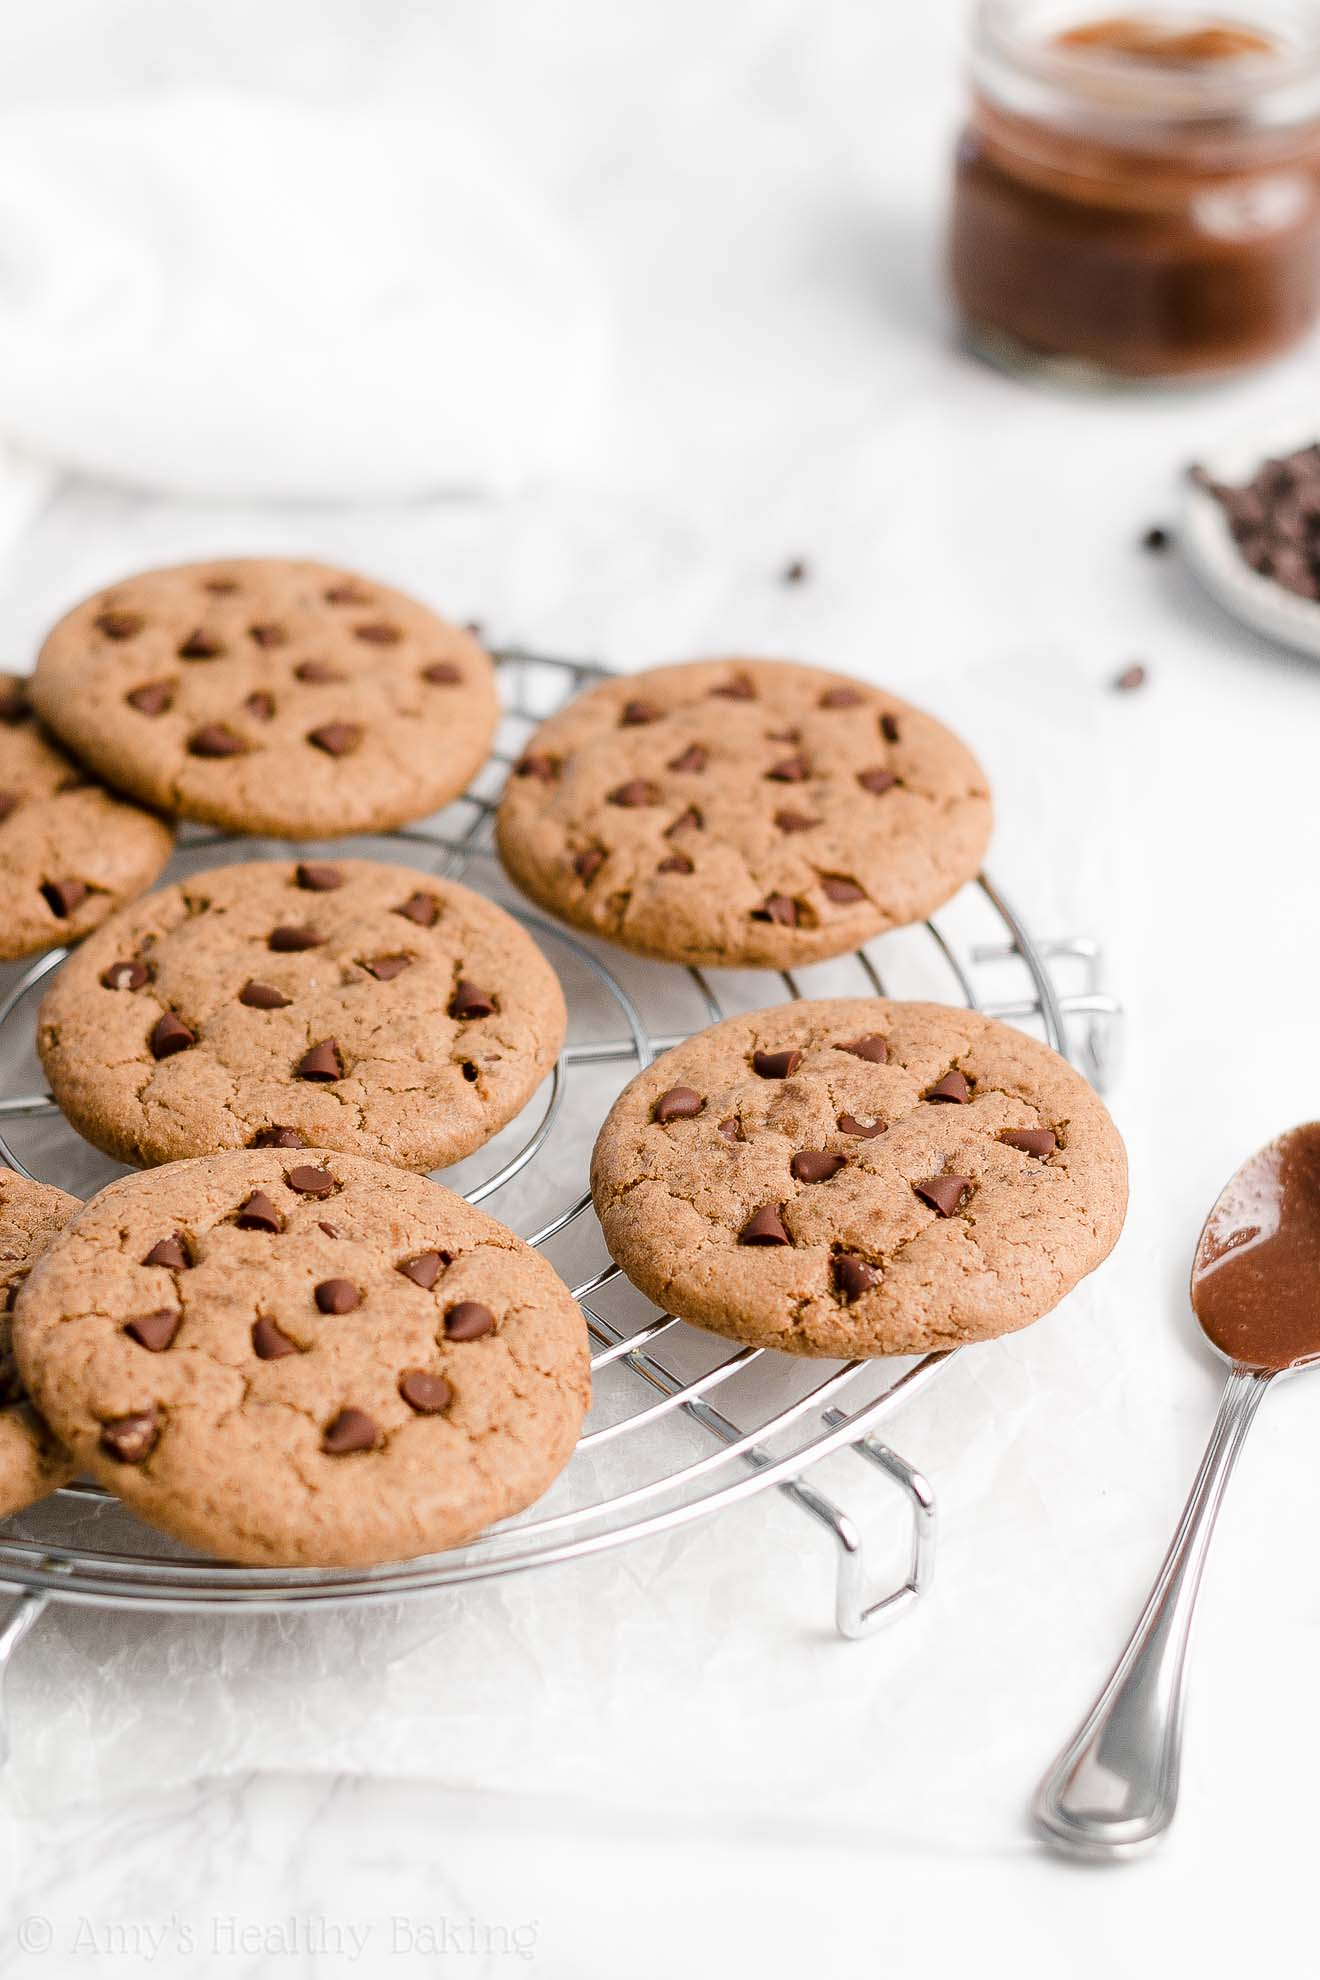 Easy Healthy Vegan Gluten Free Flourless Nutella Chocolate Chip Cookies